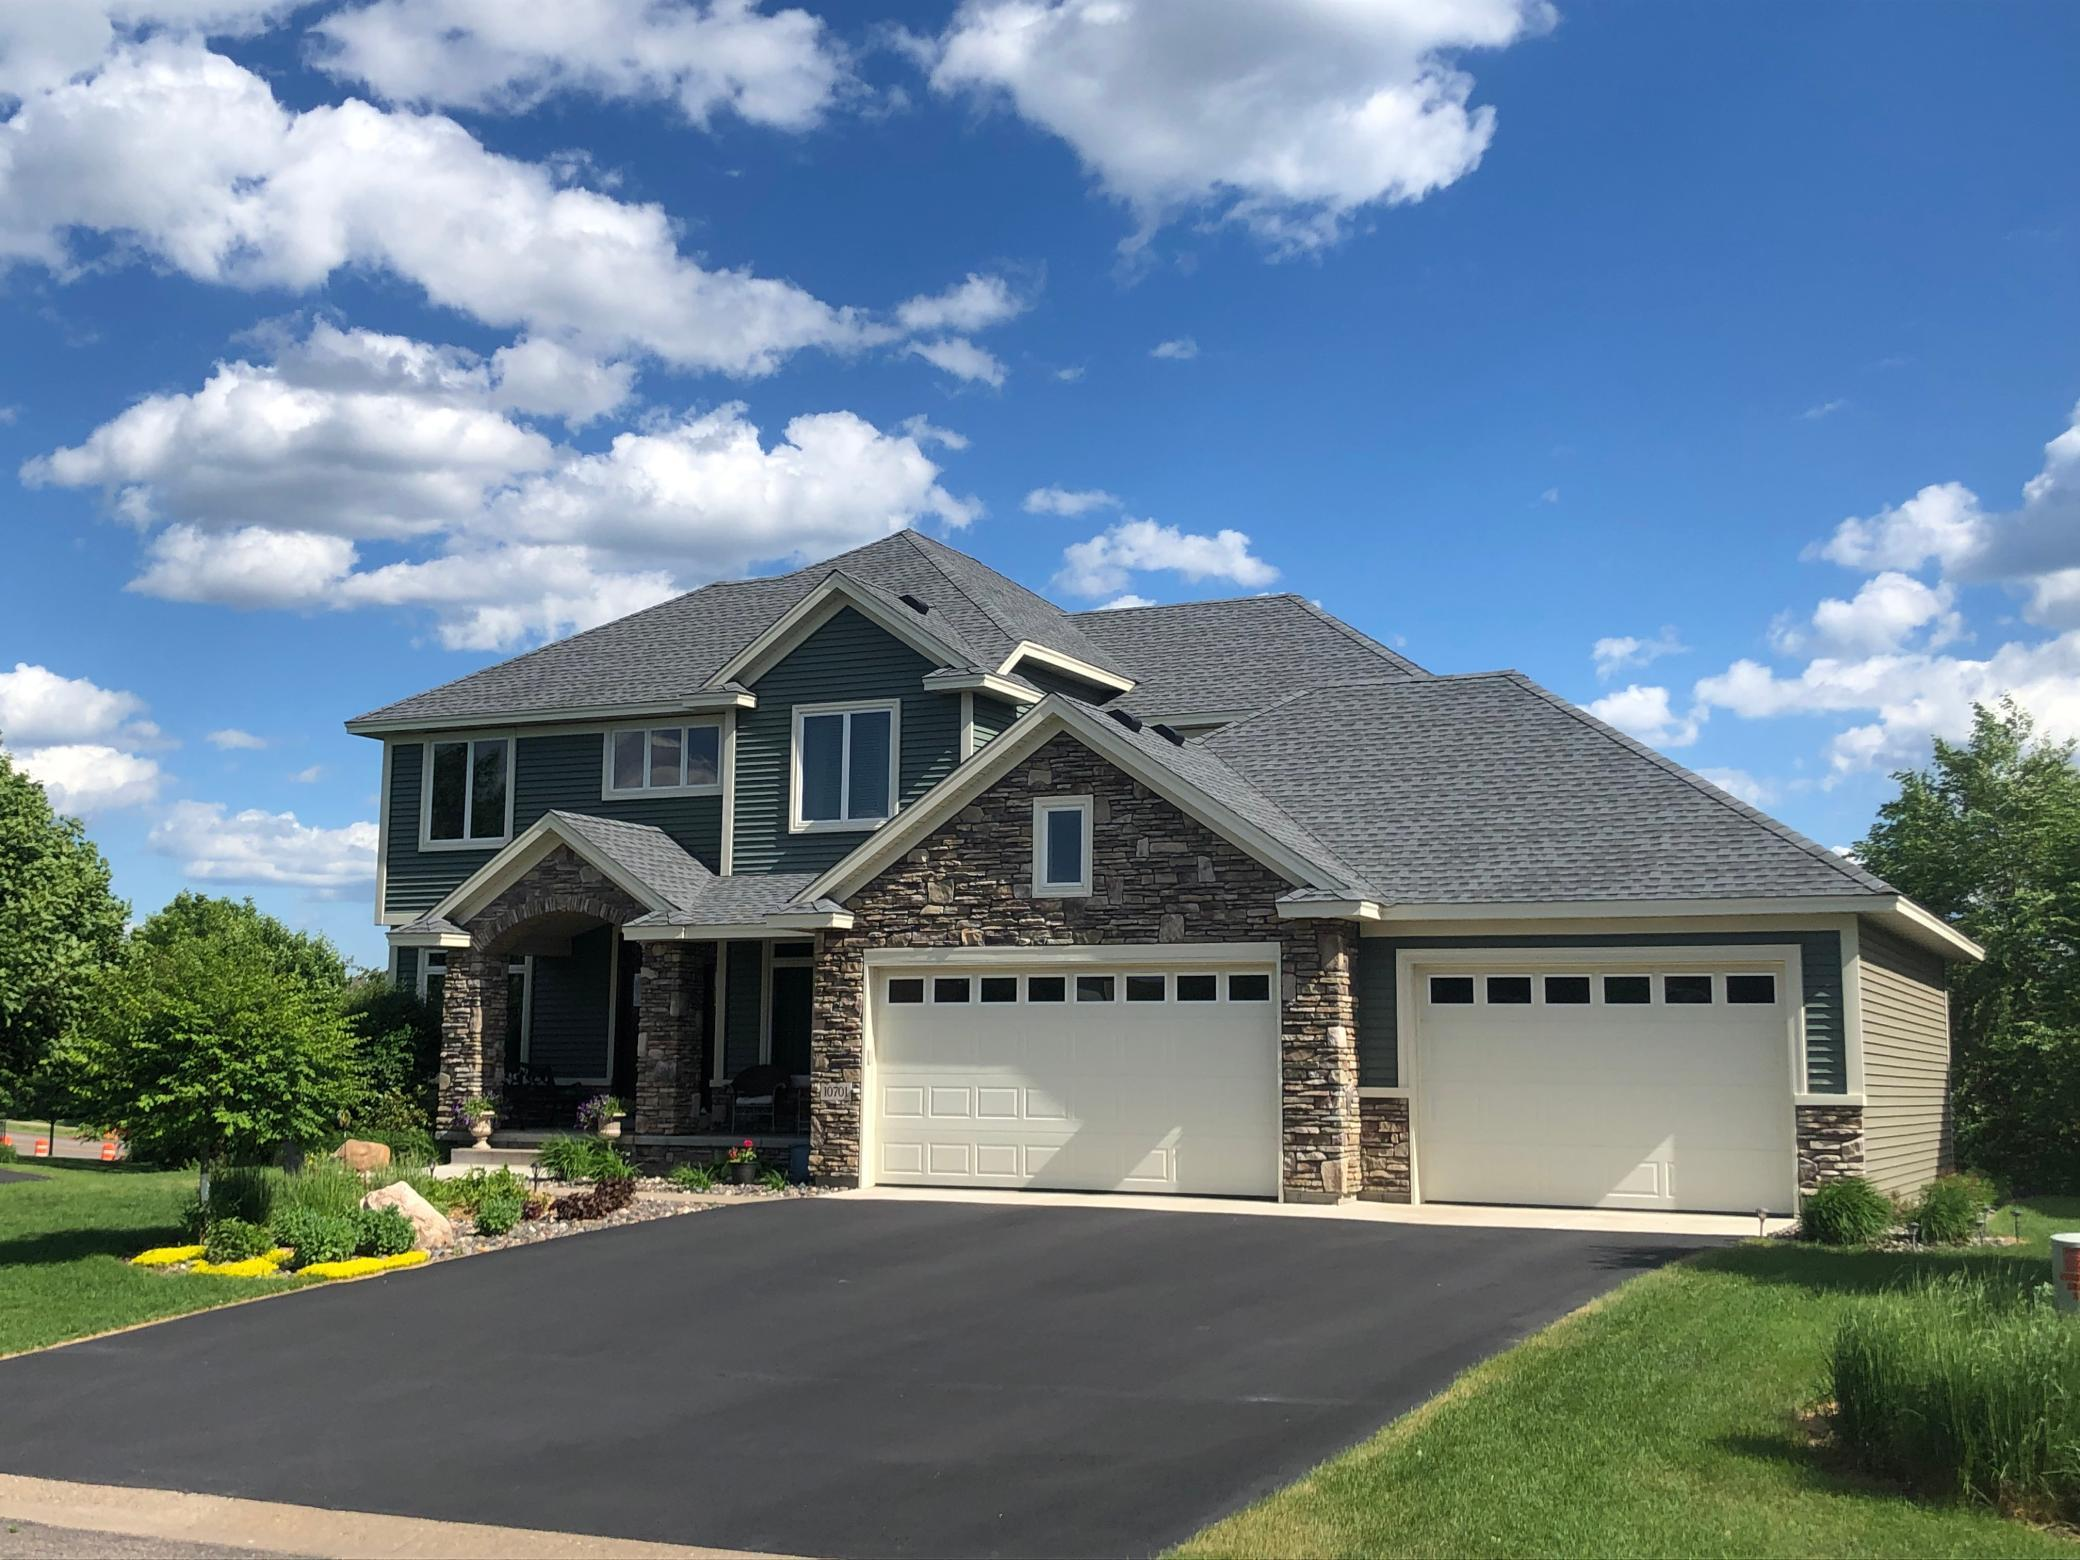 10701 Jersey N Property Photo - Brooklyn Park, MN real estate listing